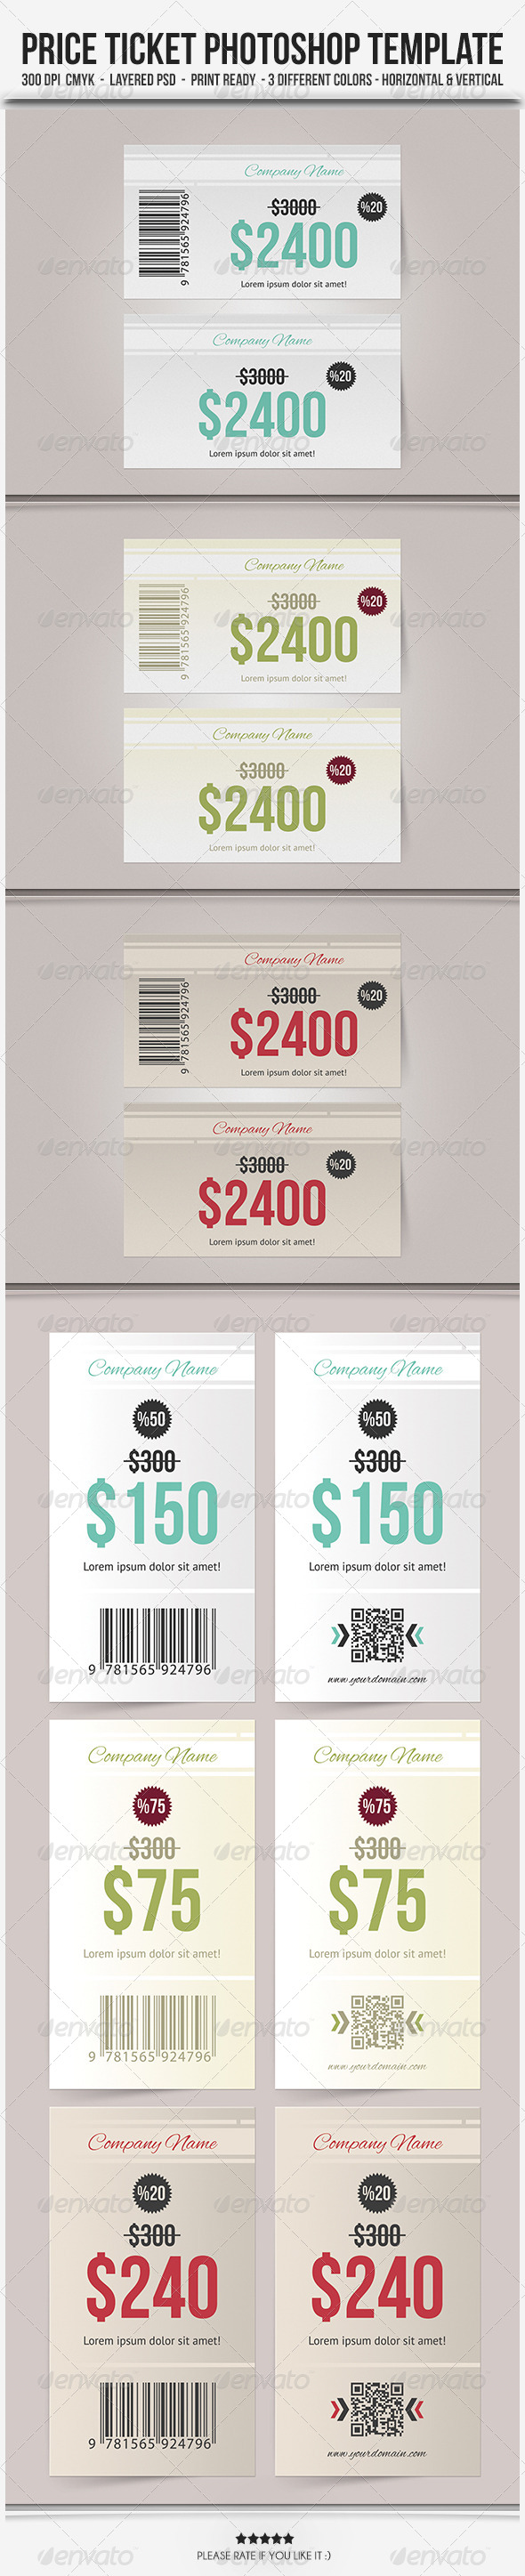 GraphicRiver Price Ticket Photoshop Template 5926591